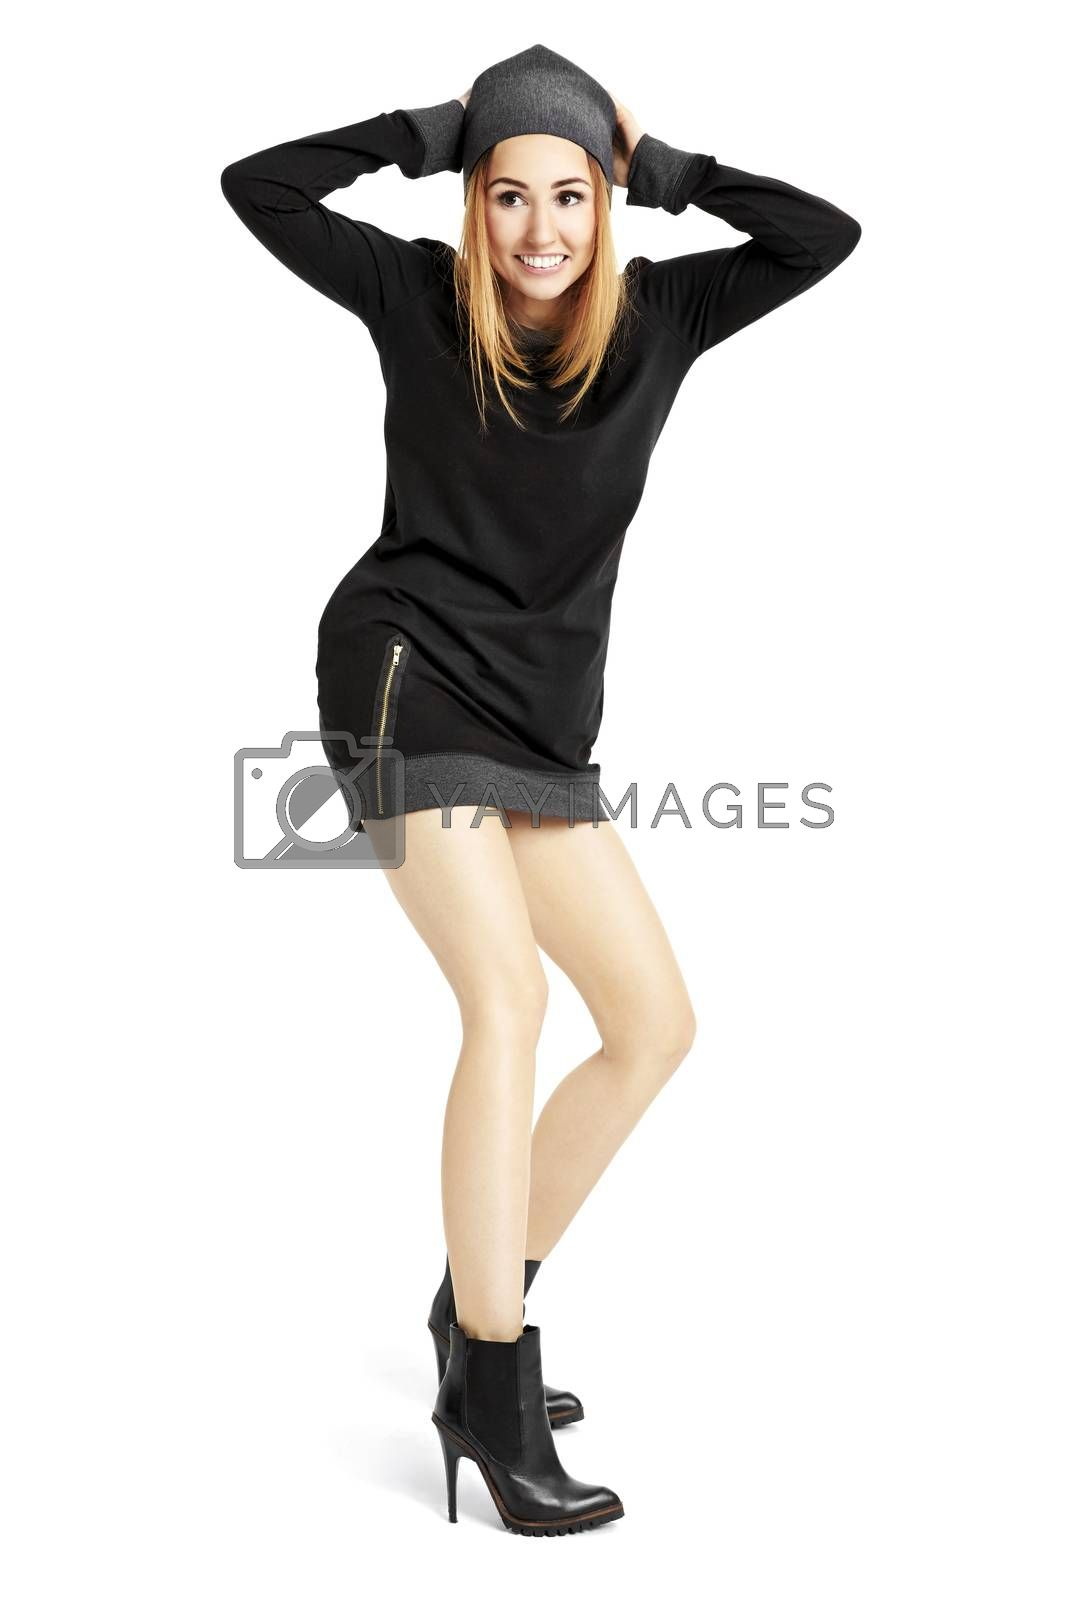 Full length portrait of young woman in a black mini dress and cap. Isolated on white background.